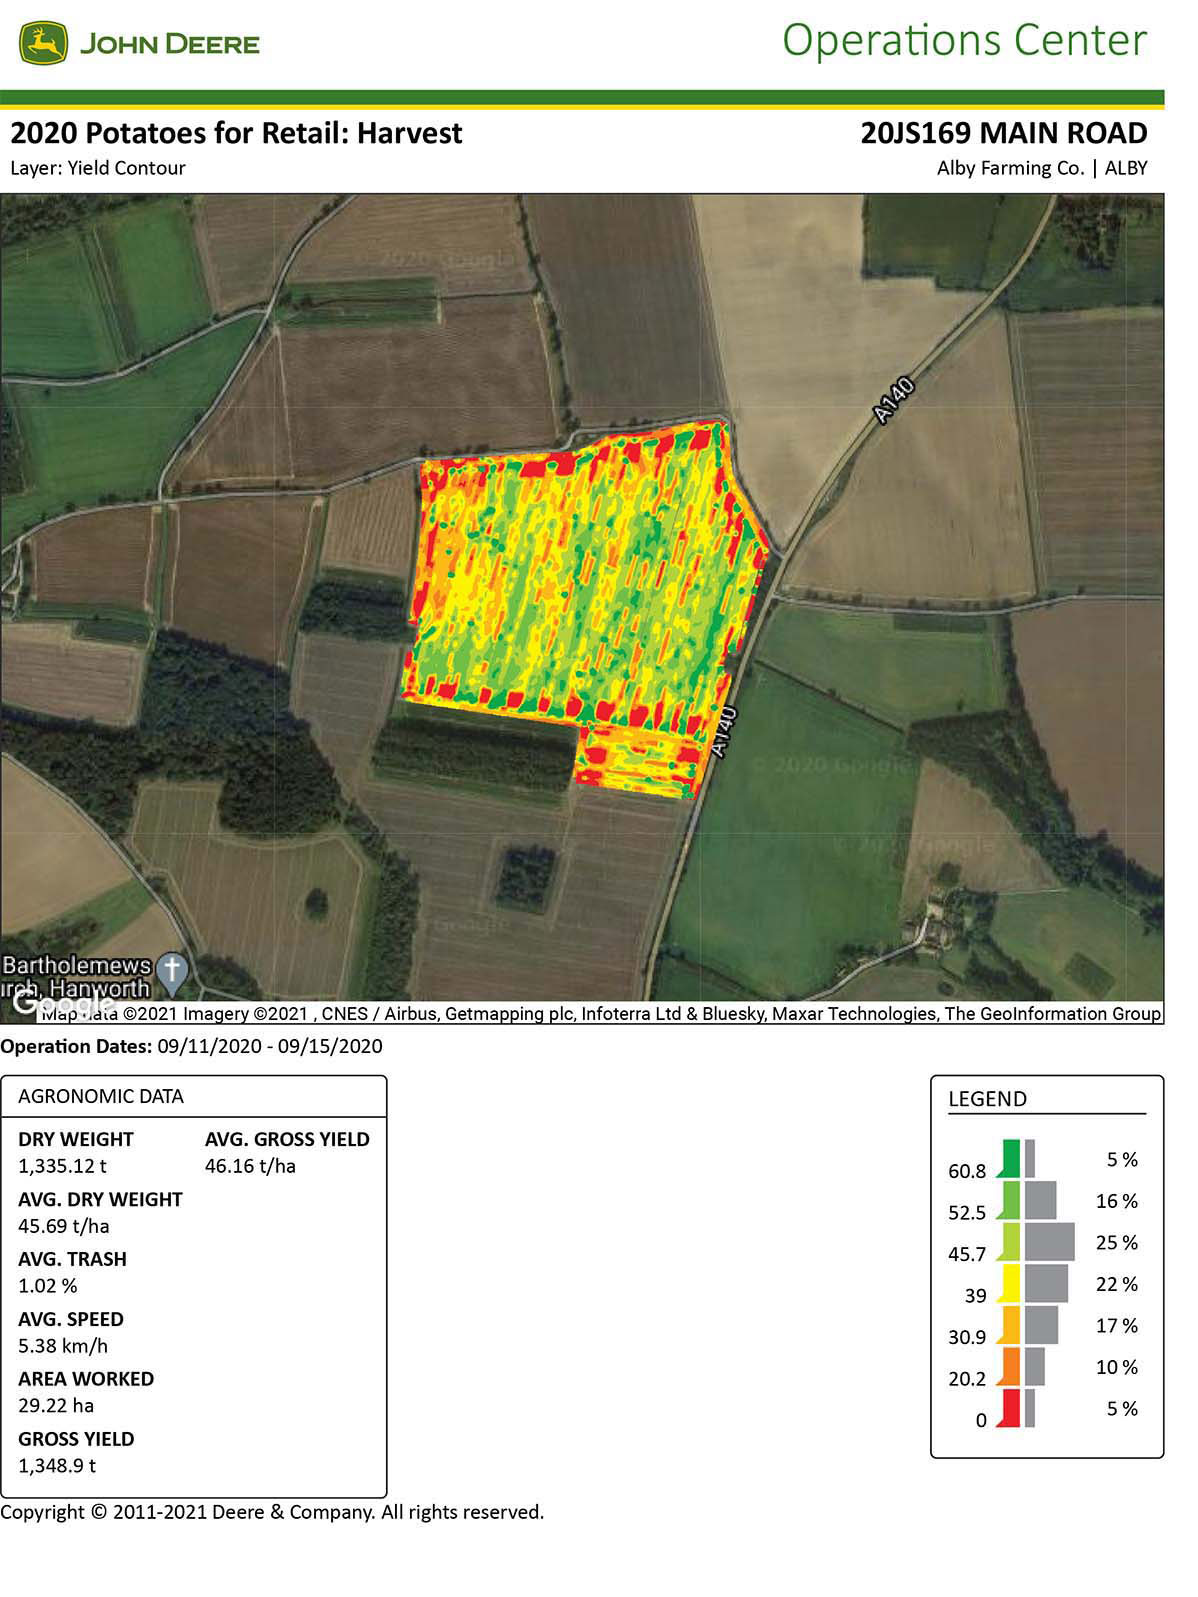 The yield map generated by the Grimme harvester is displayed in the MyJohnDeere portal in the farm office.